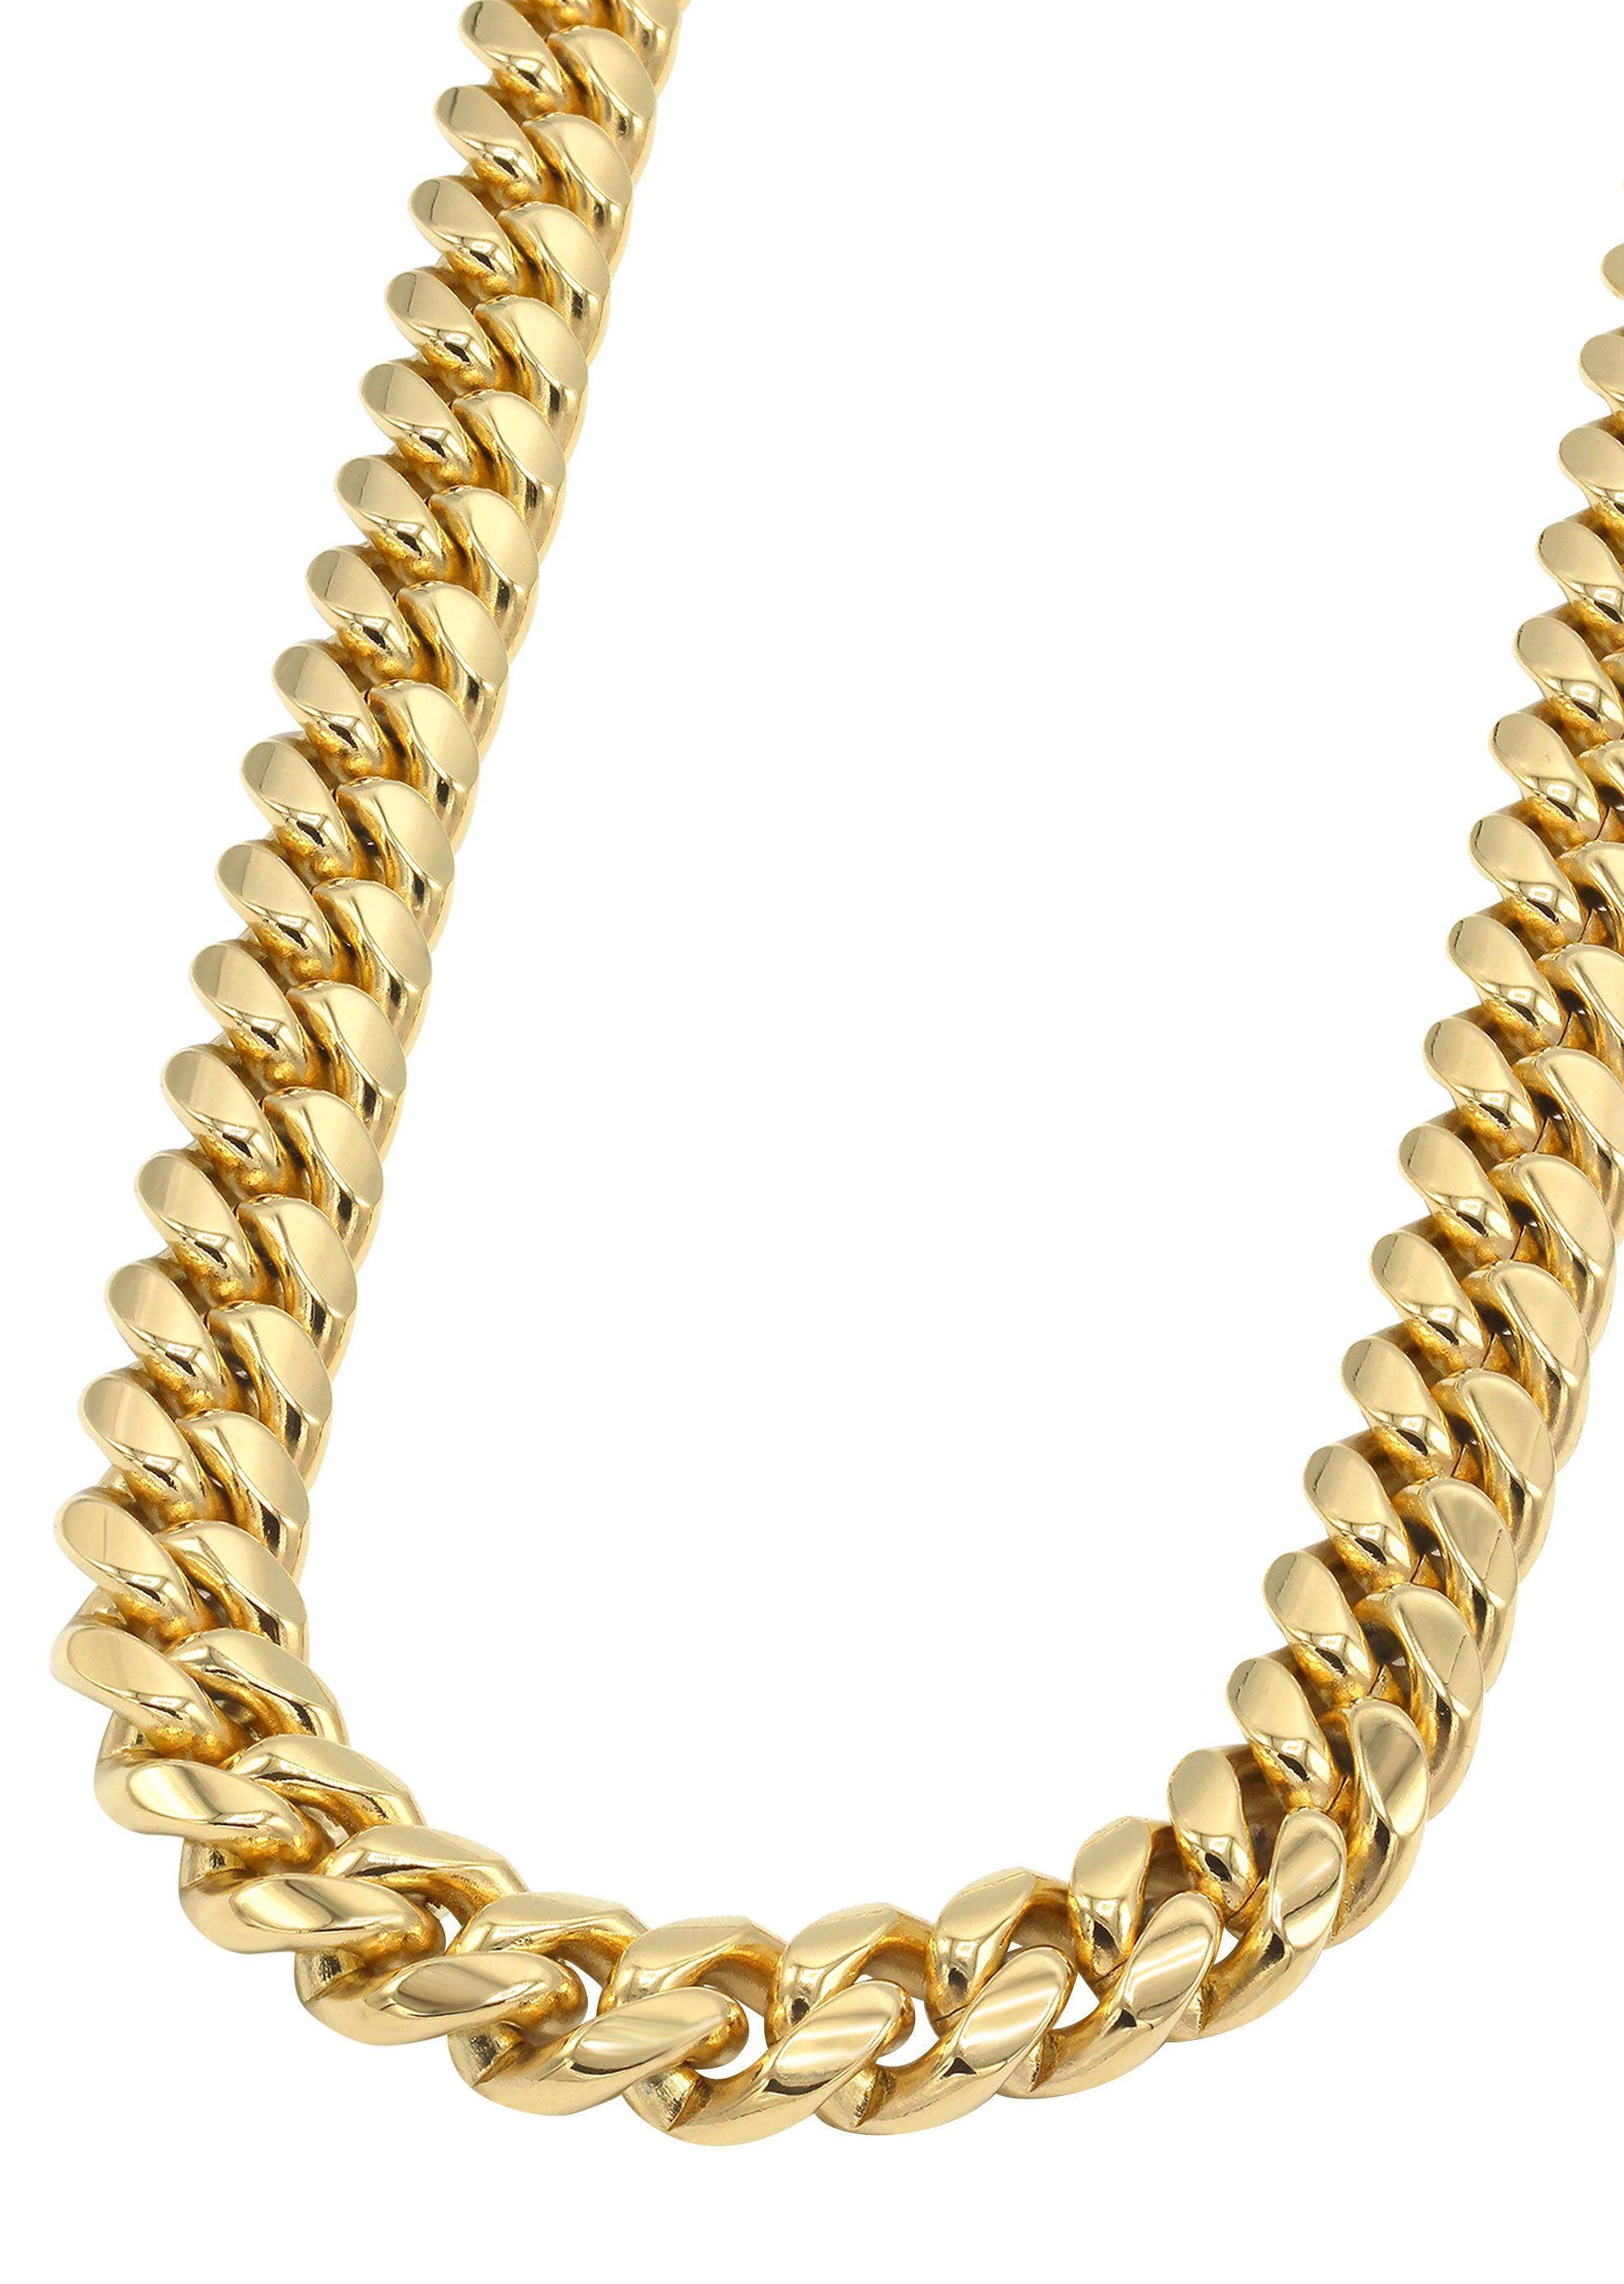 79b80faa1 14K Gold Mens Chain Solid Miami Cuban Link in 2019 | christmas ...